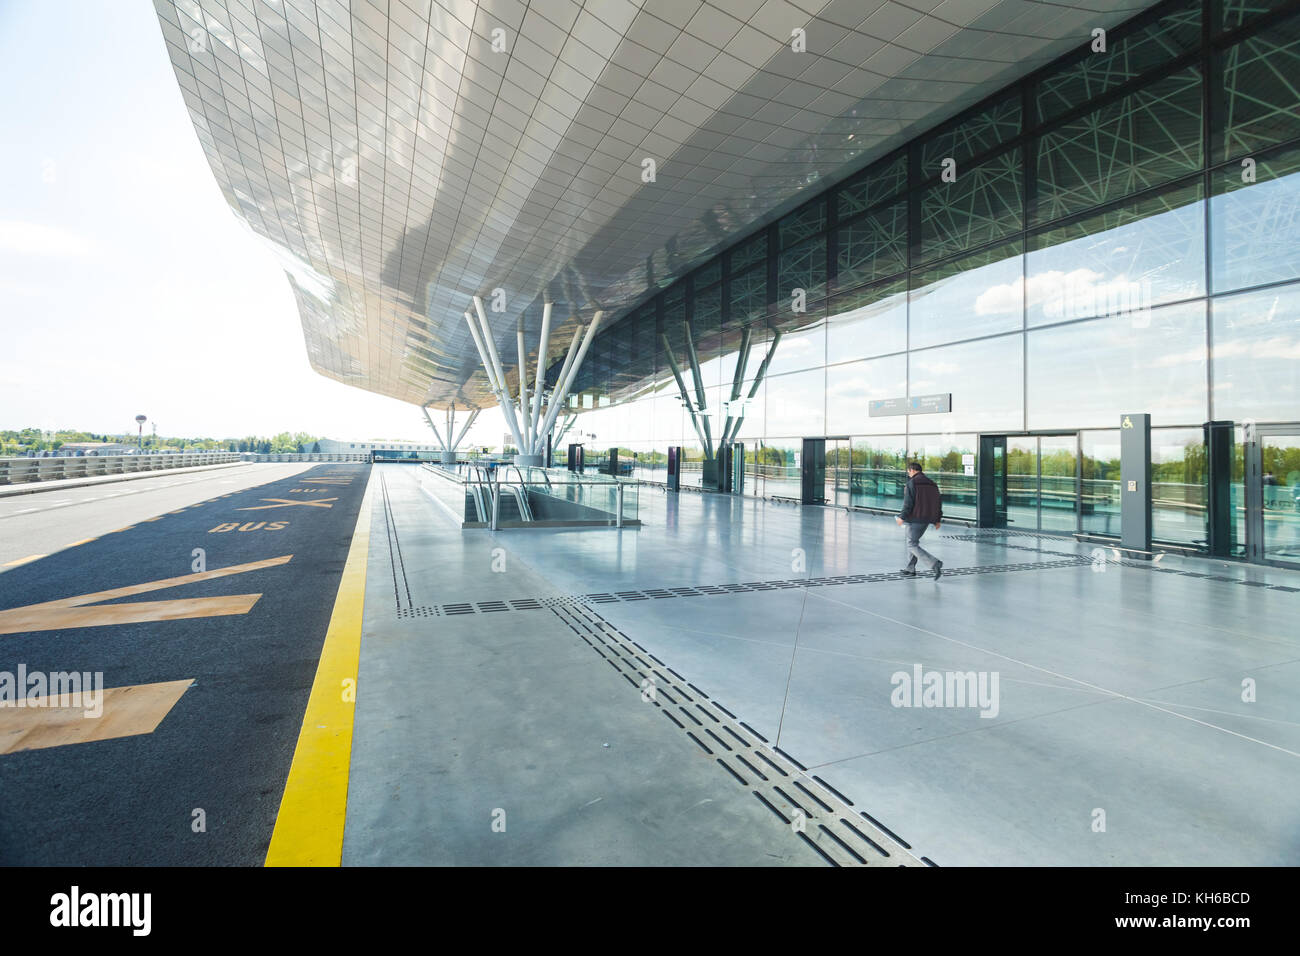 Arrivals Zagreb Airport High Resolution Stock Photography And Images Alamy